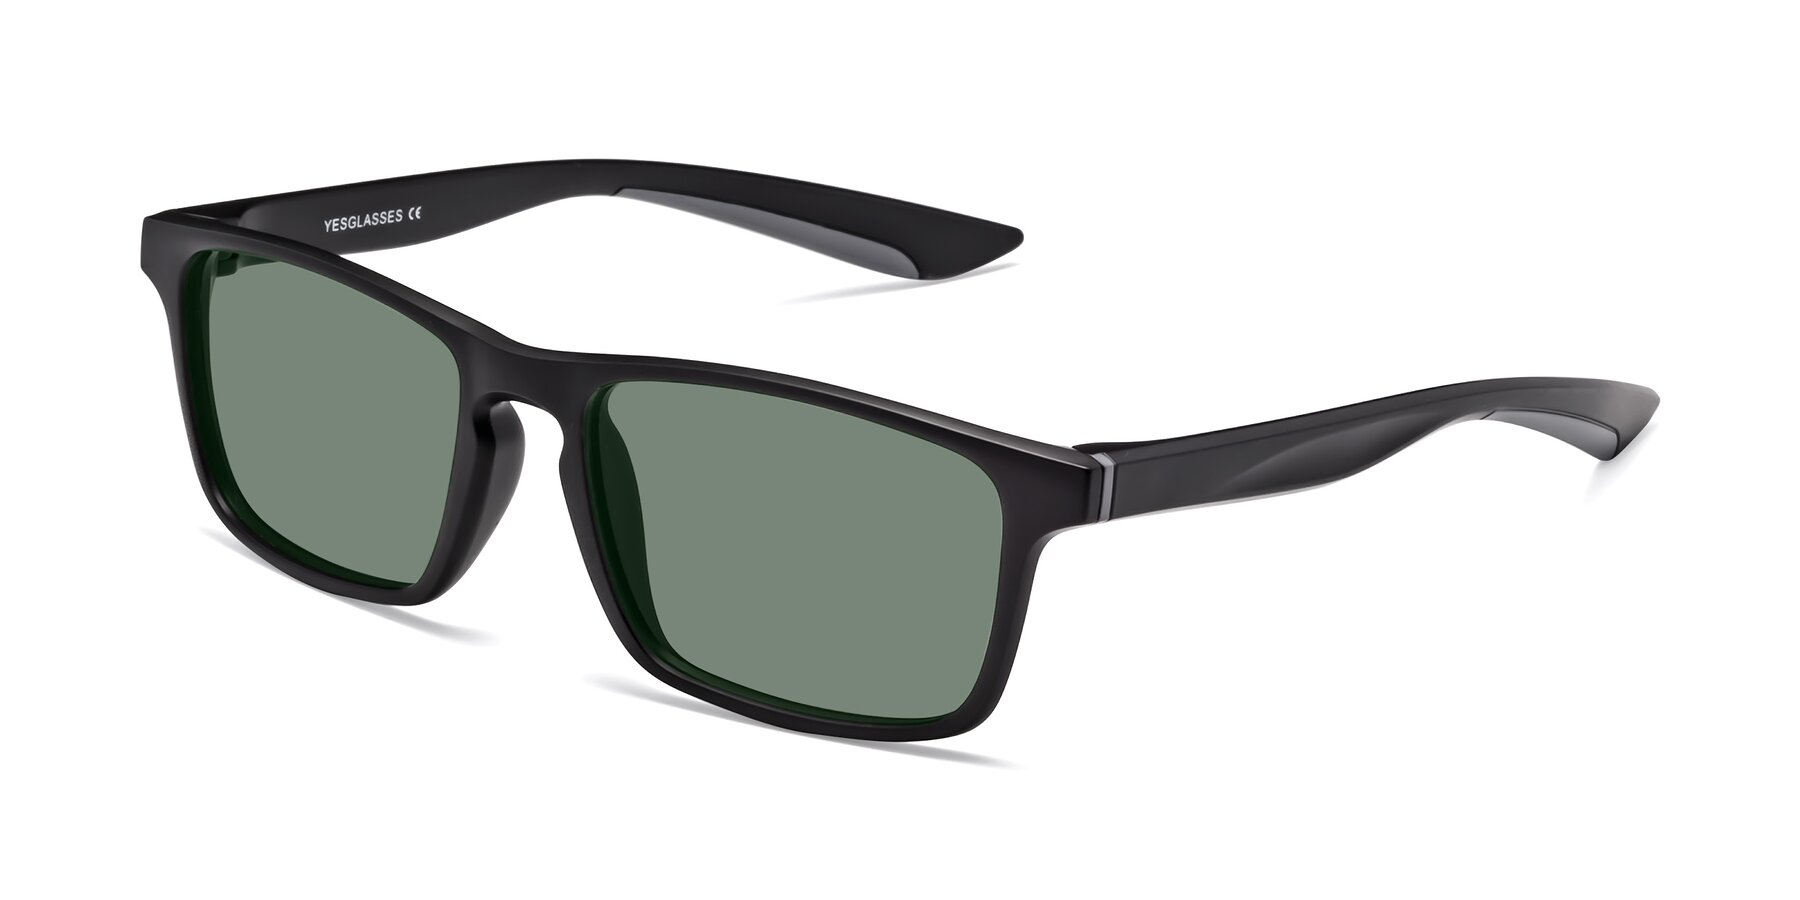 Angle of Passion in Matte Black-Gray with Medium Green Tinted Lenses